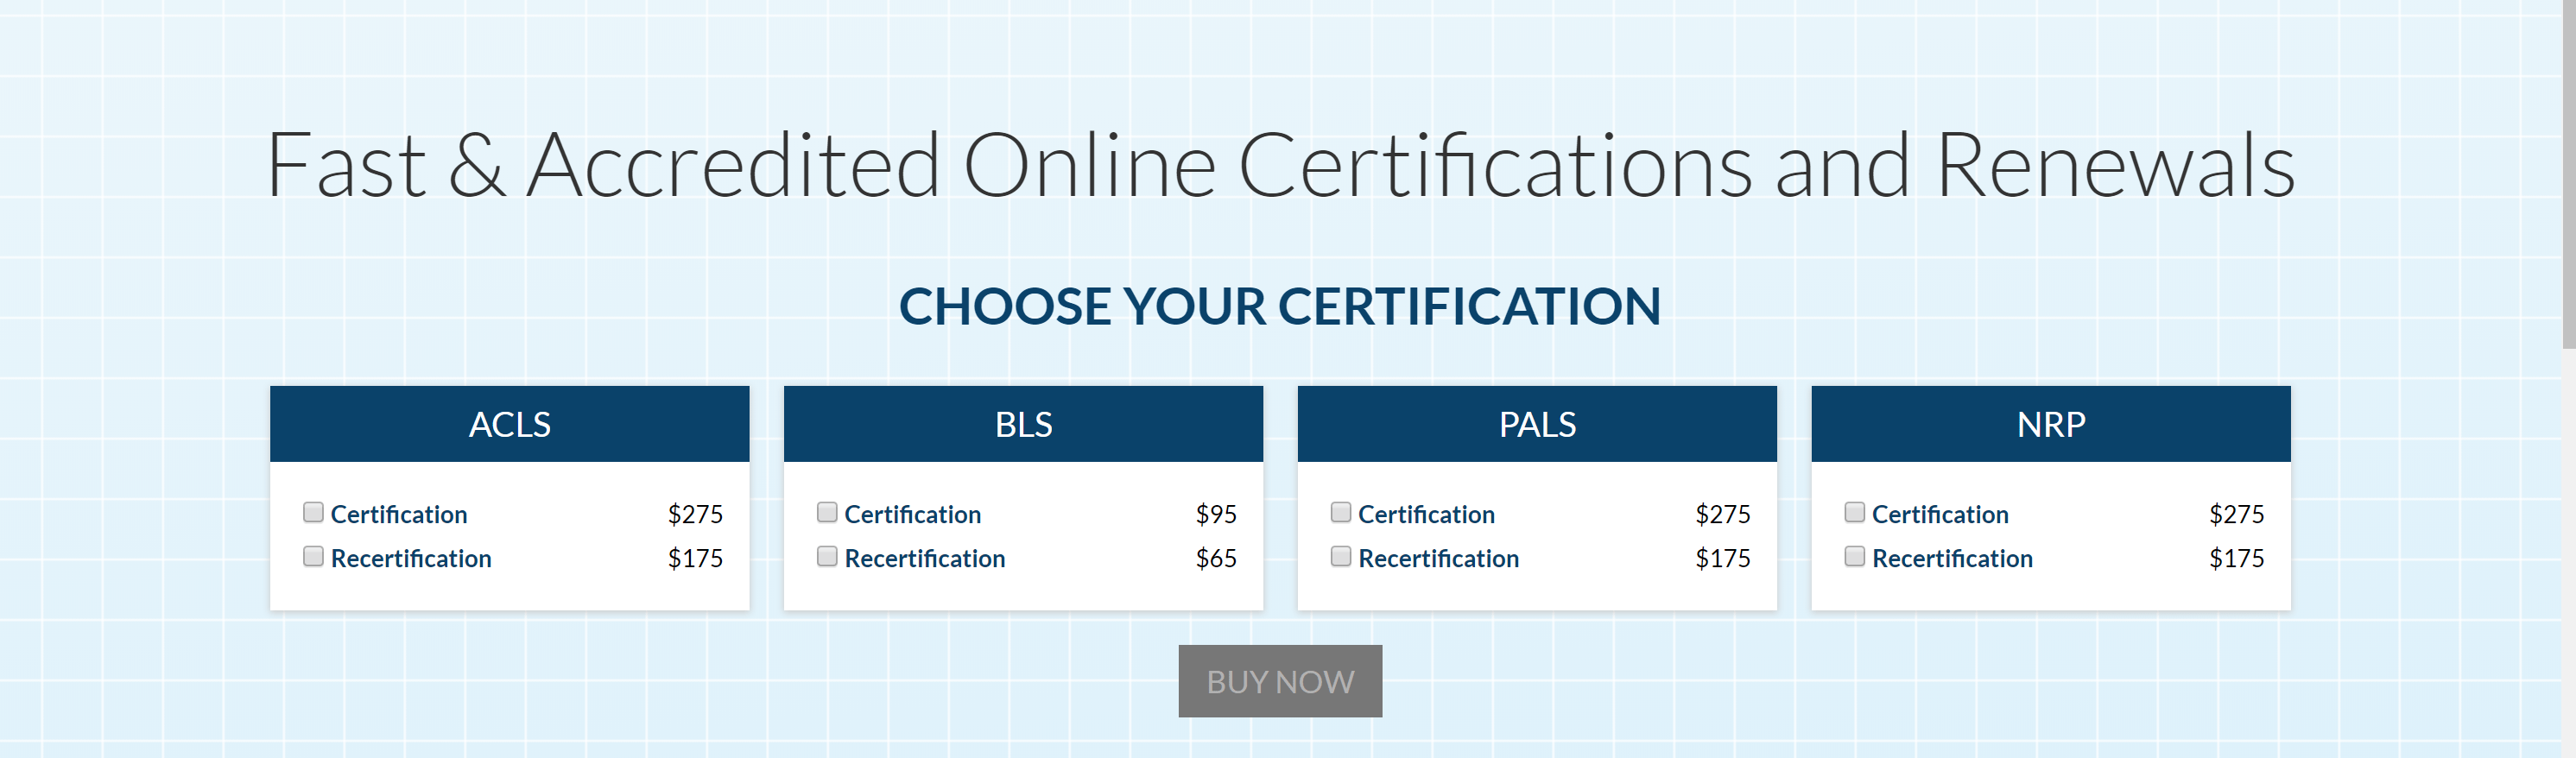 How Much Does acls Cost -Certification Plans